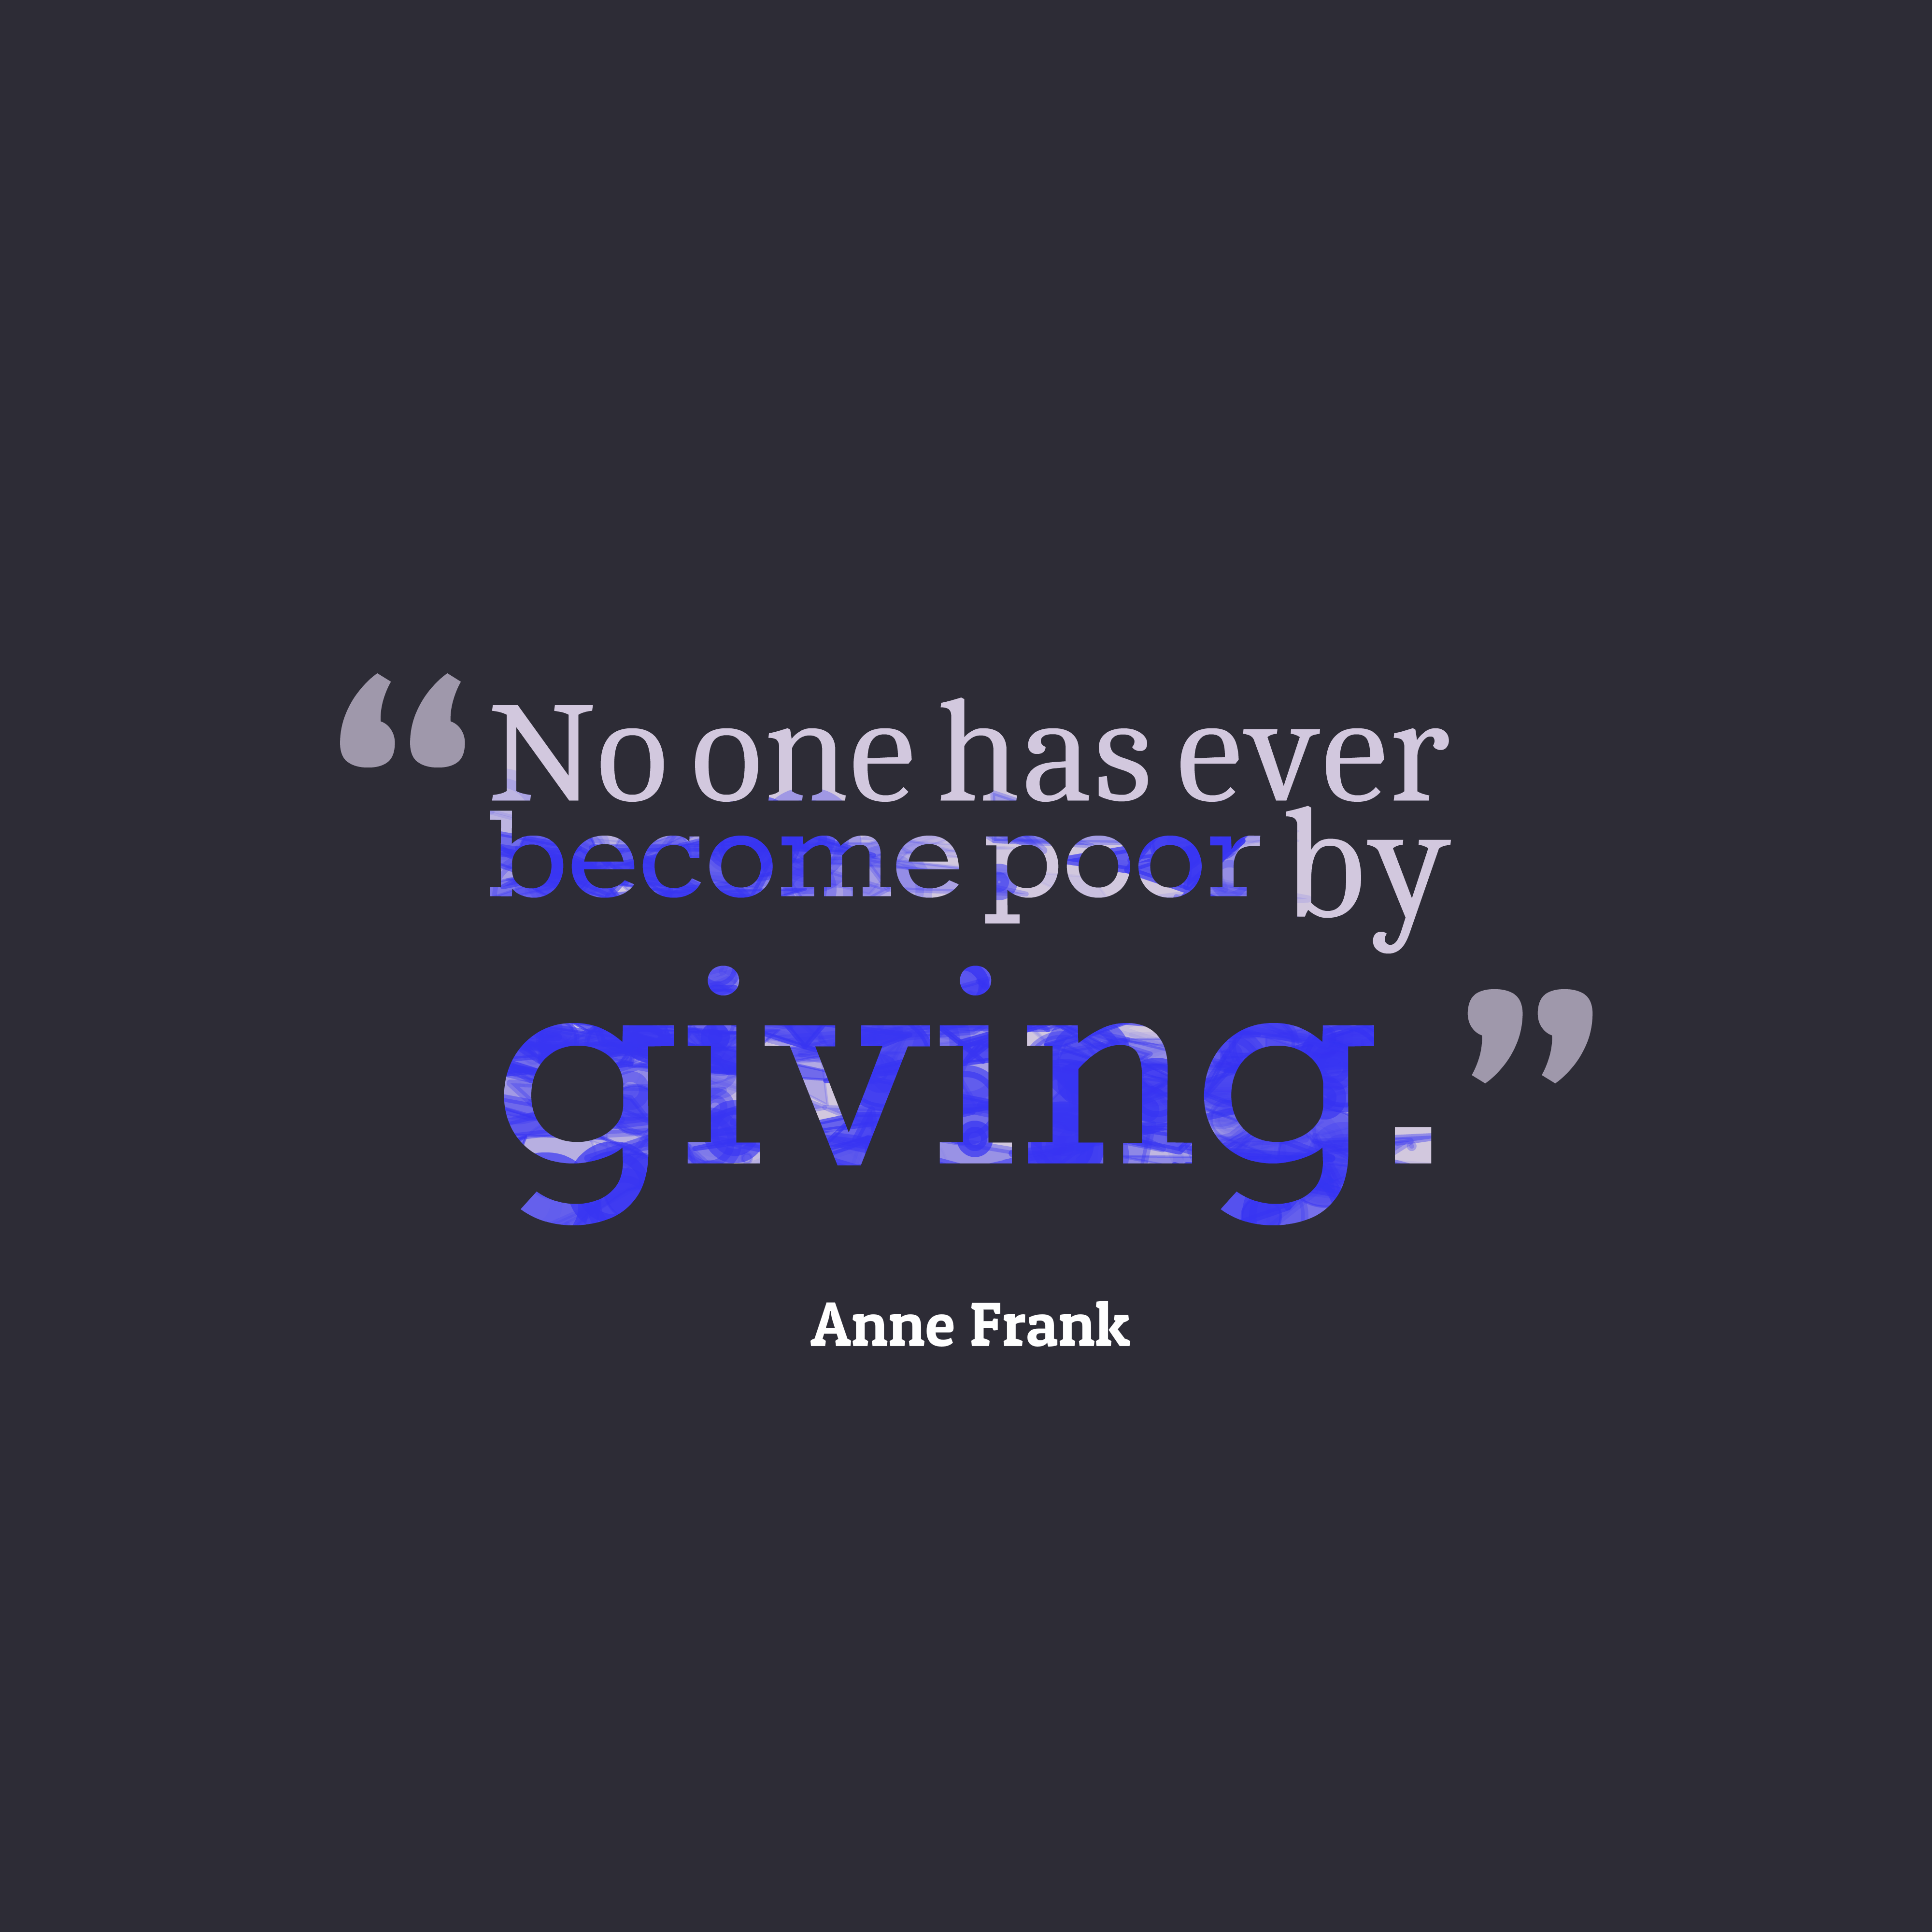 Anne Frank quote about giving.